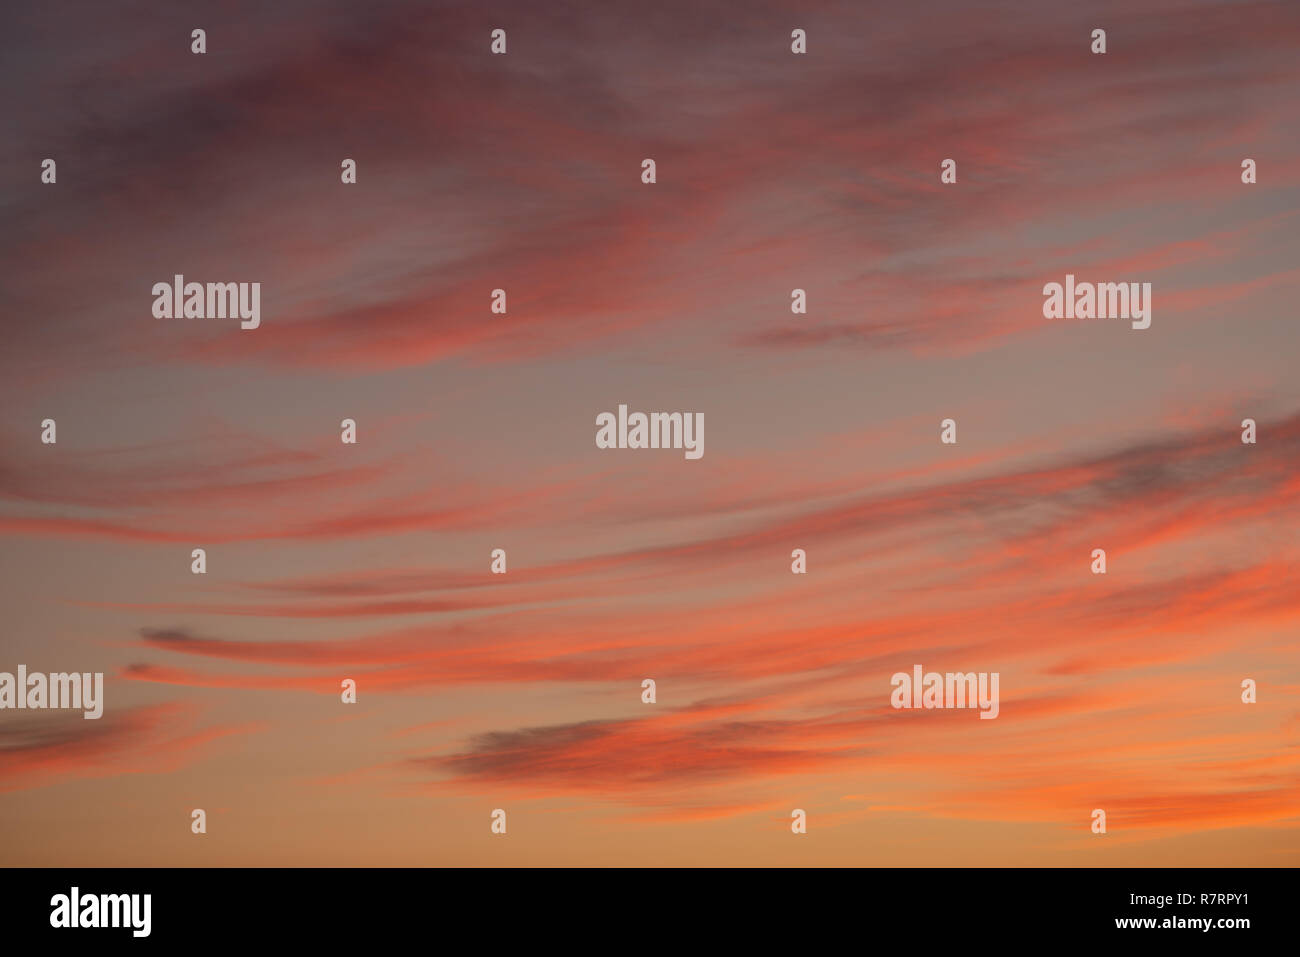 Soft muted pink orange magenta clouds and sky at dusk after sunset time. - Stock Image